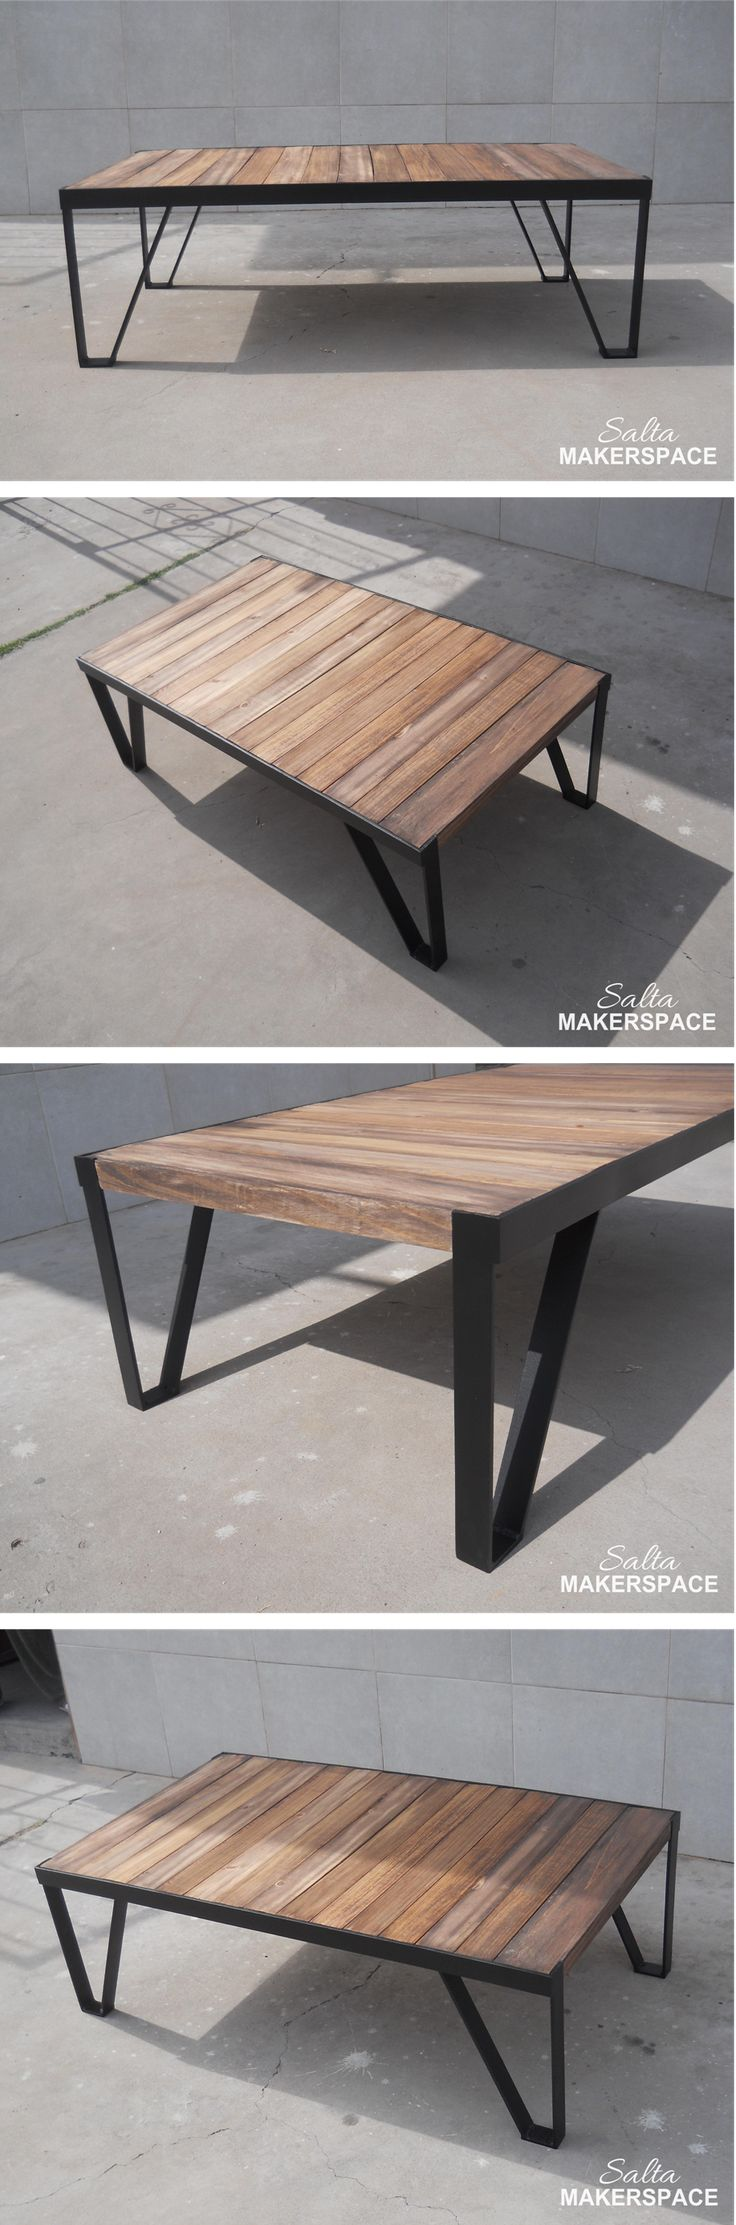 Mesa ratona - Estilo Industrial - por @josemariaga // #industrial #coffee #table